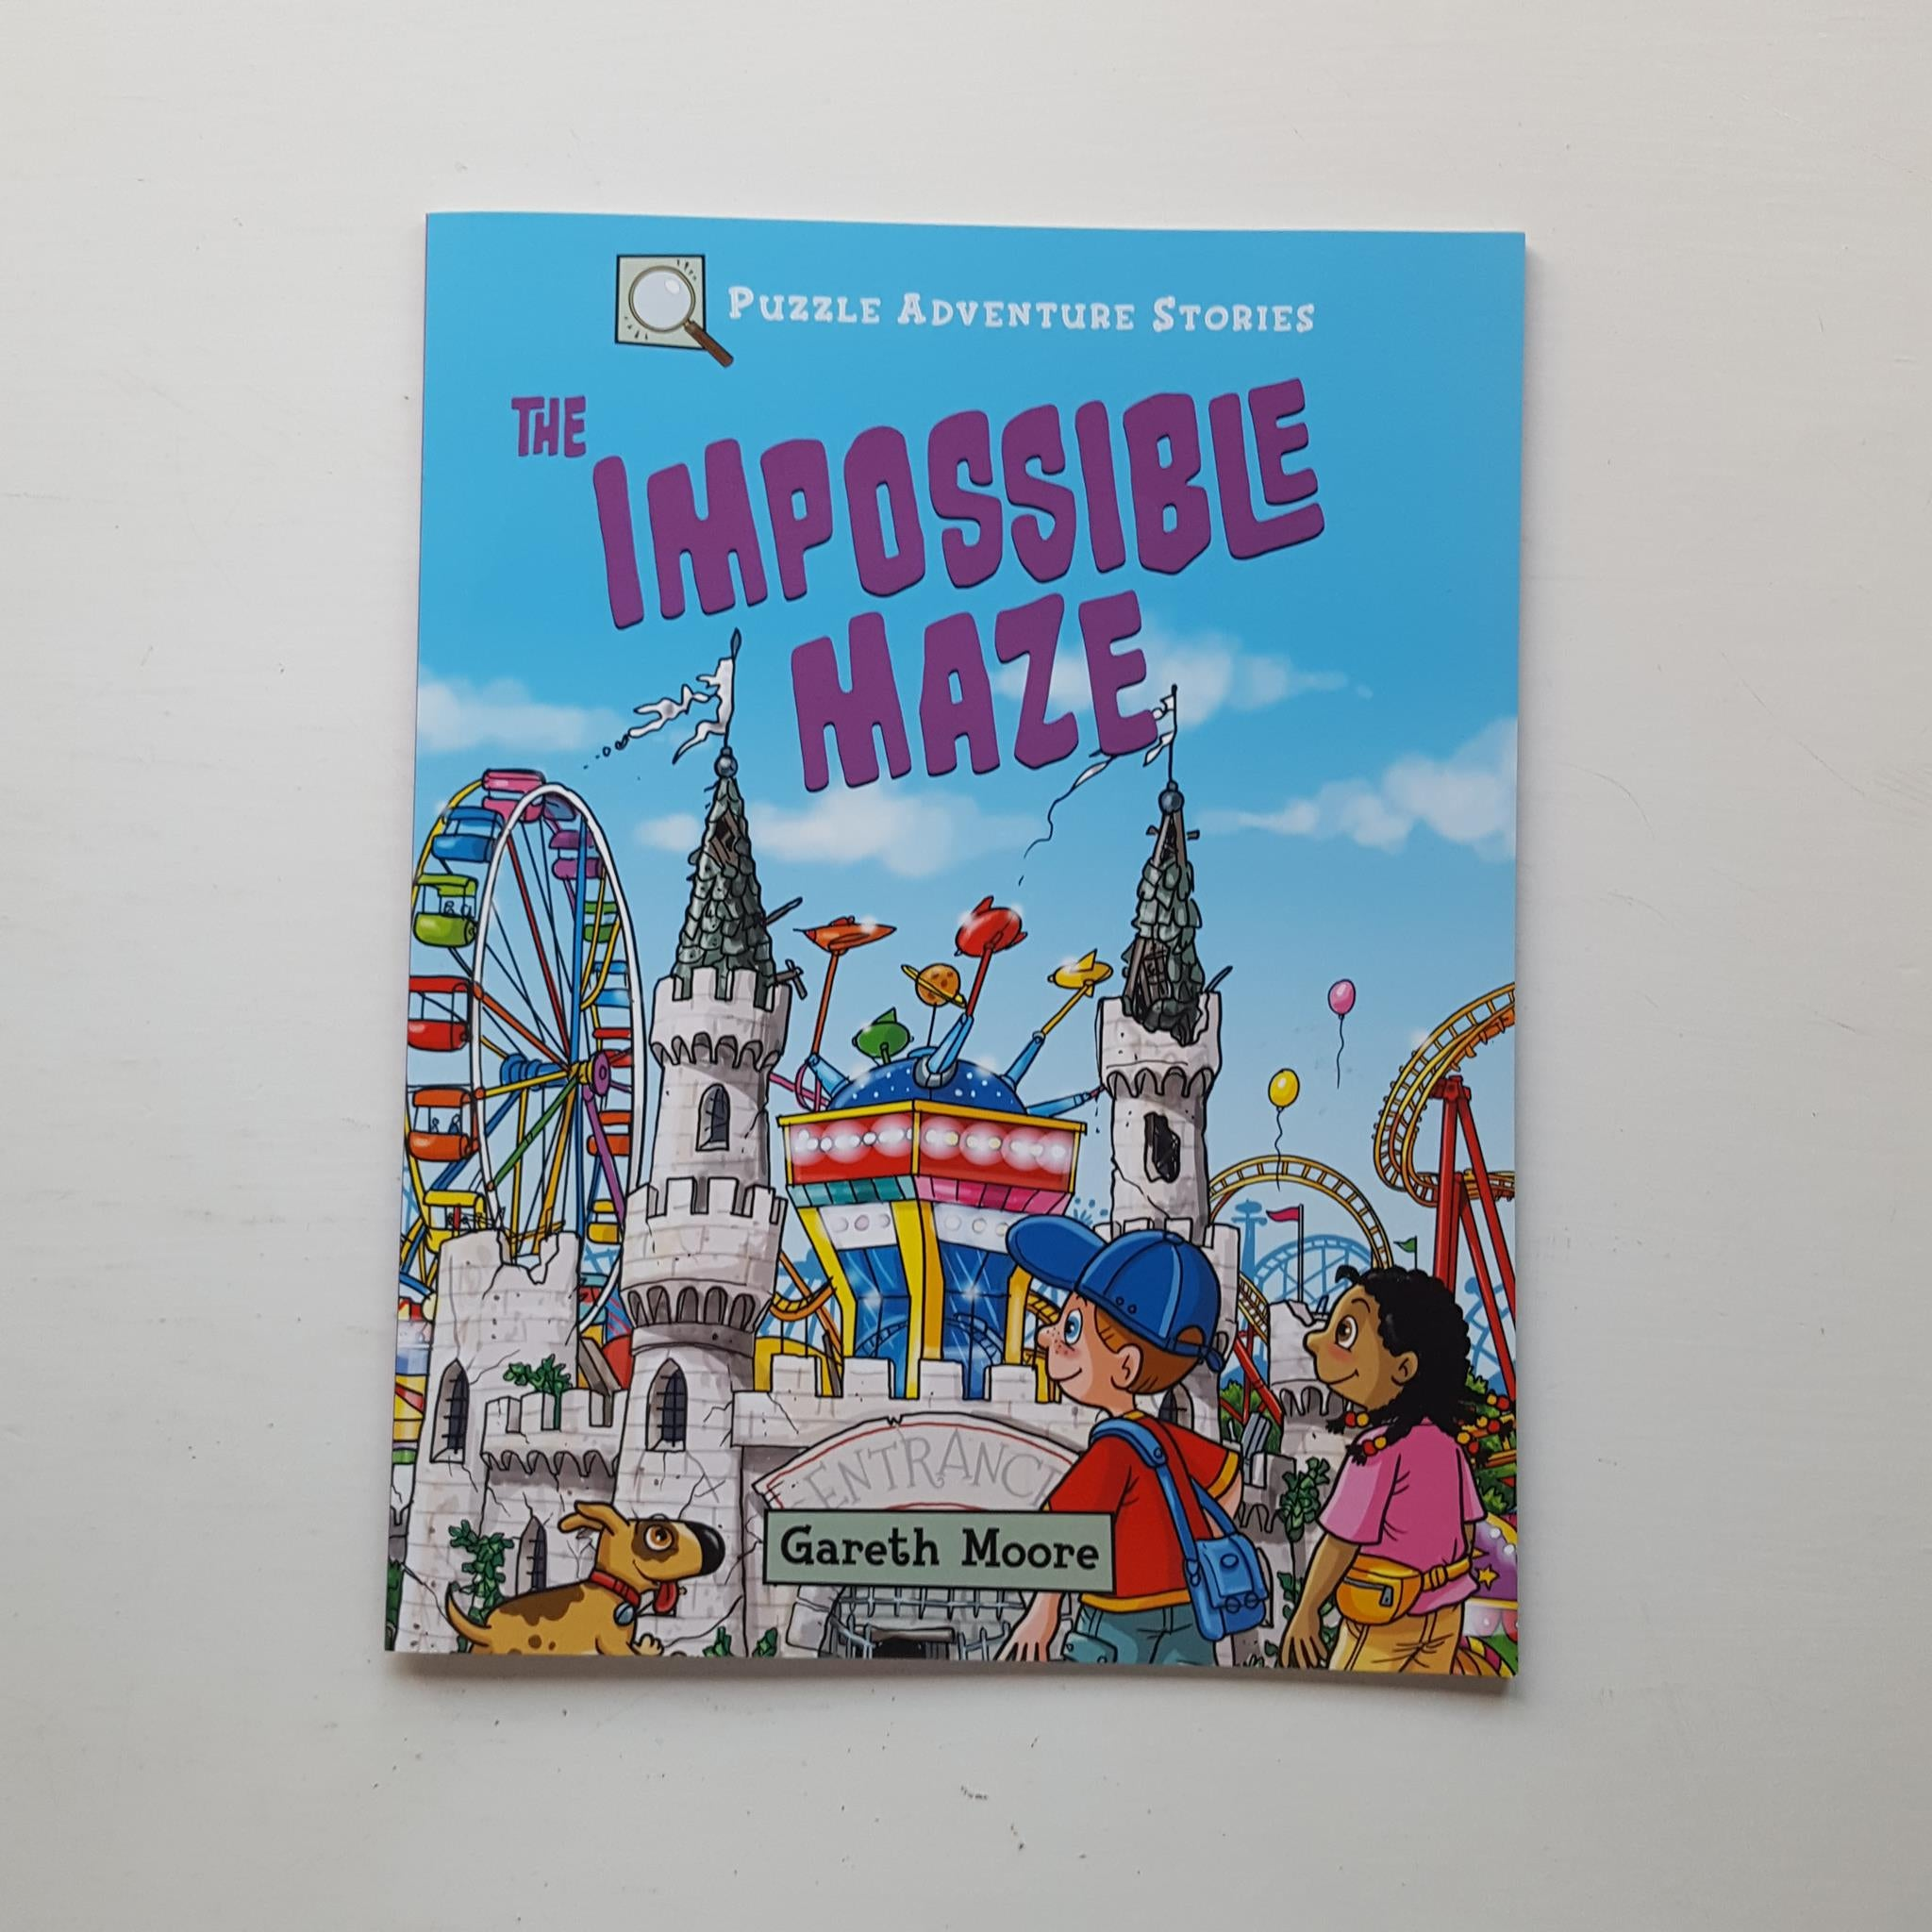 The Impossible Maze by Gareth Moore